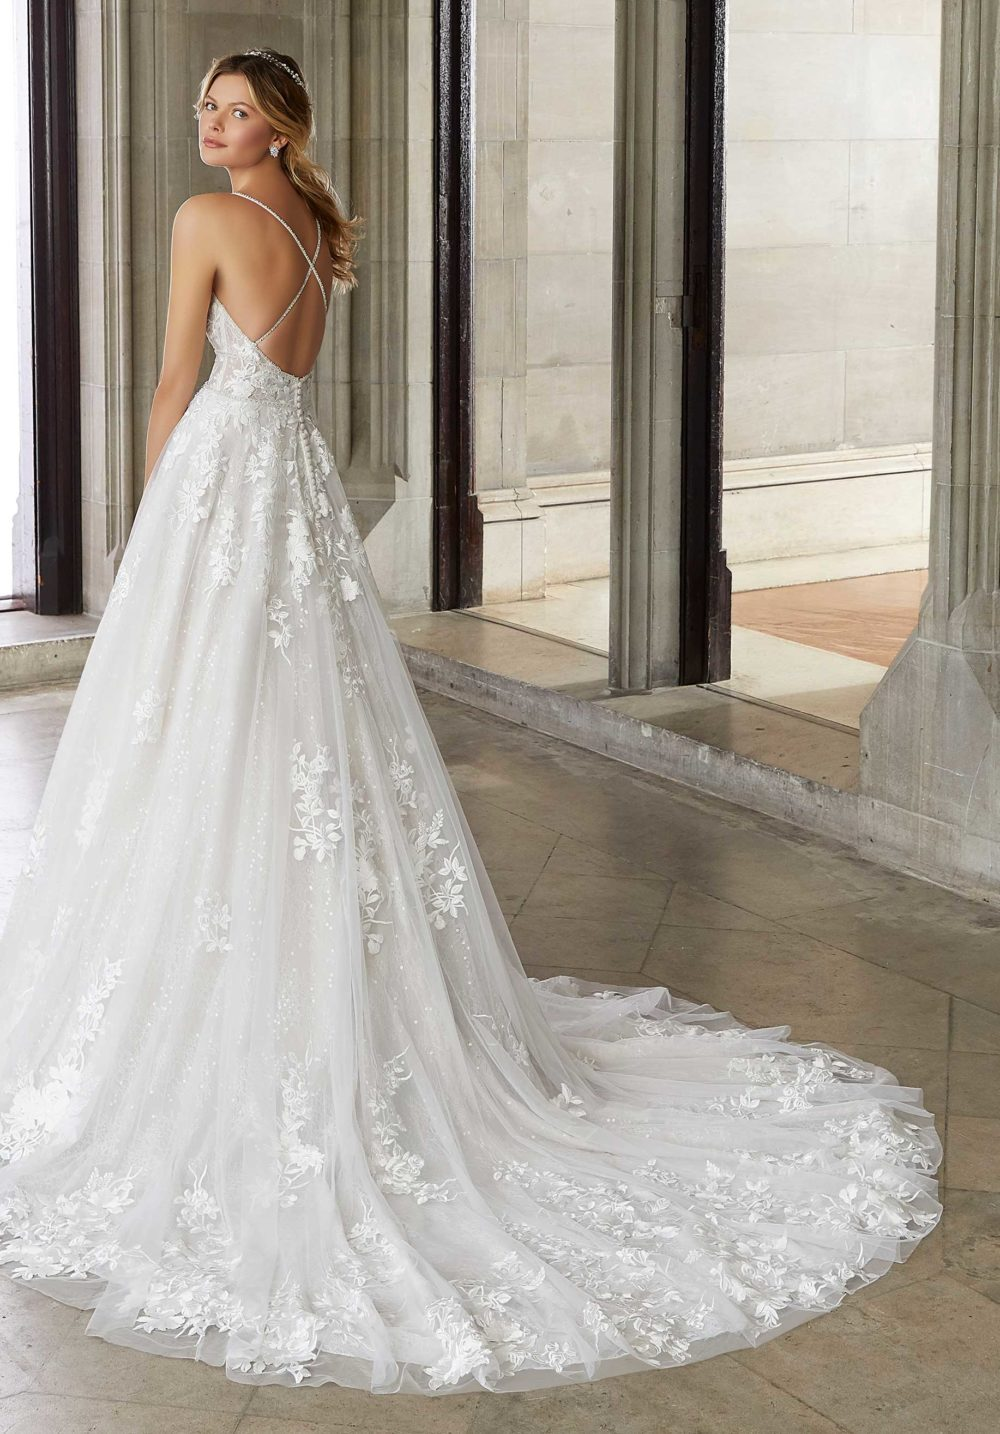 Morilee Wedding Gown Dress style 2127 back